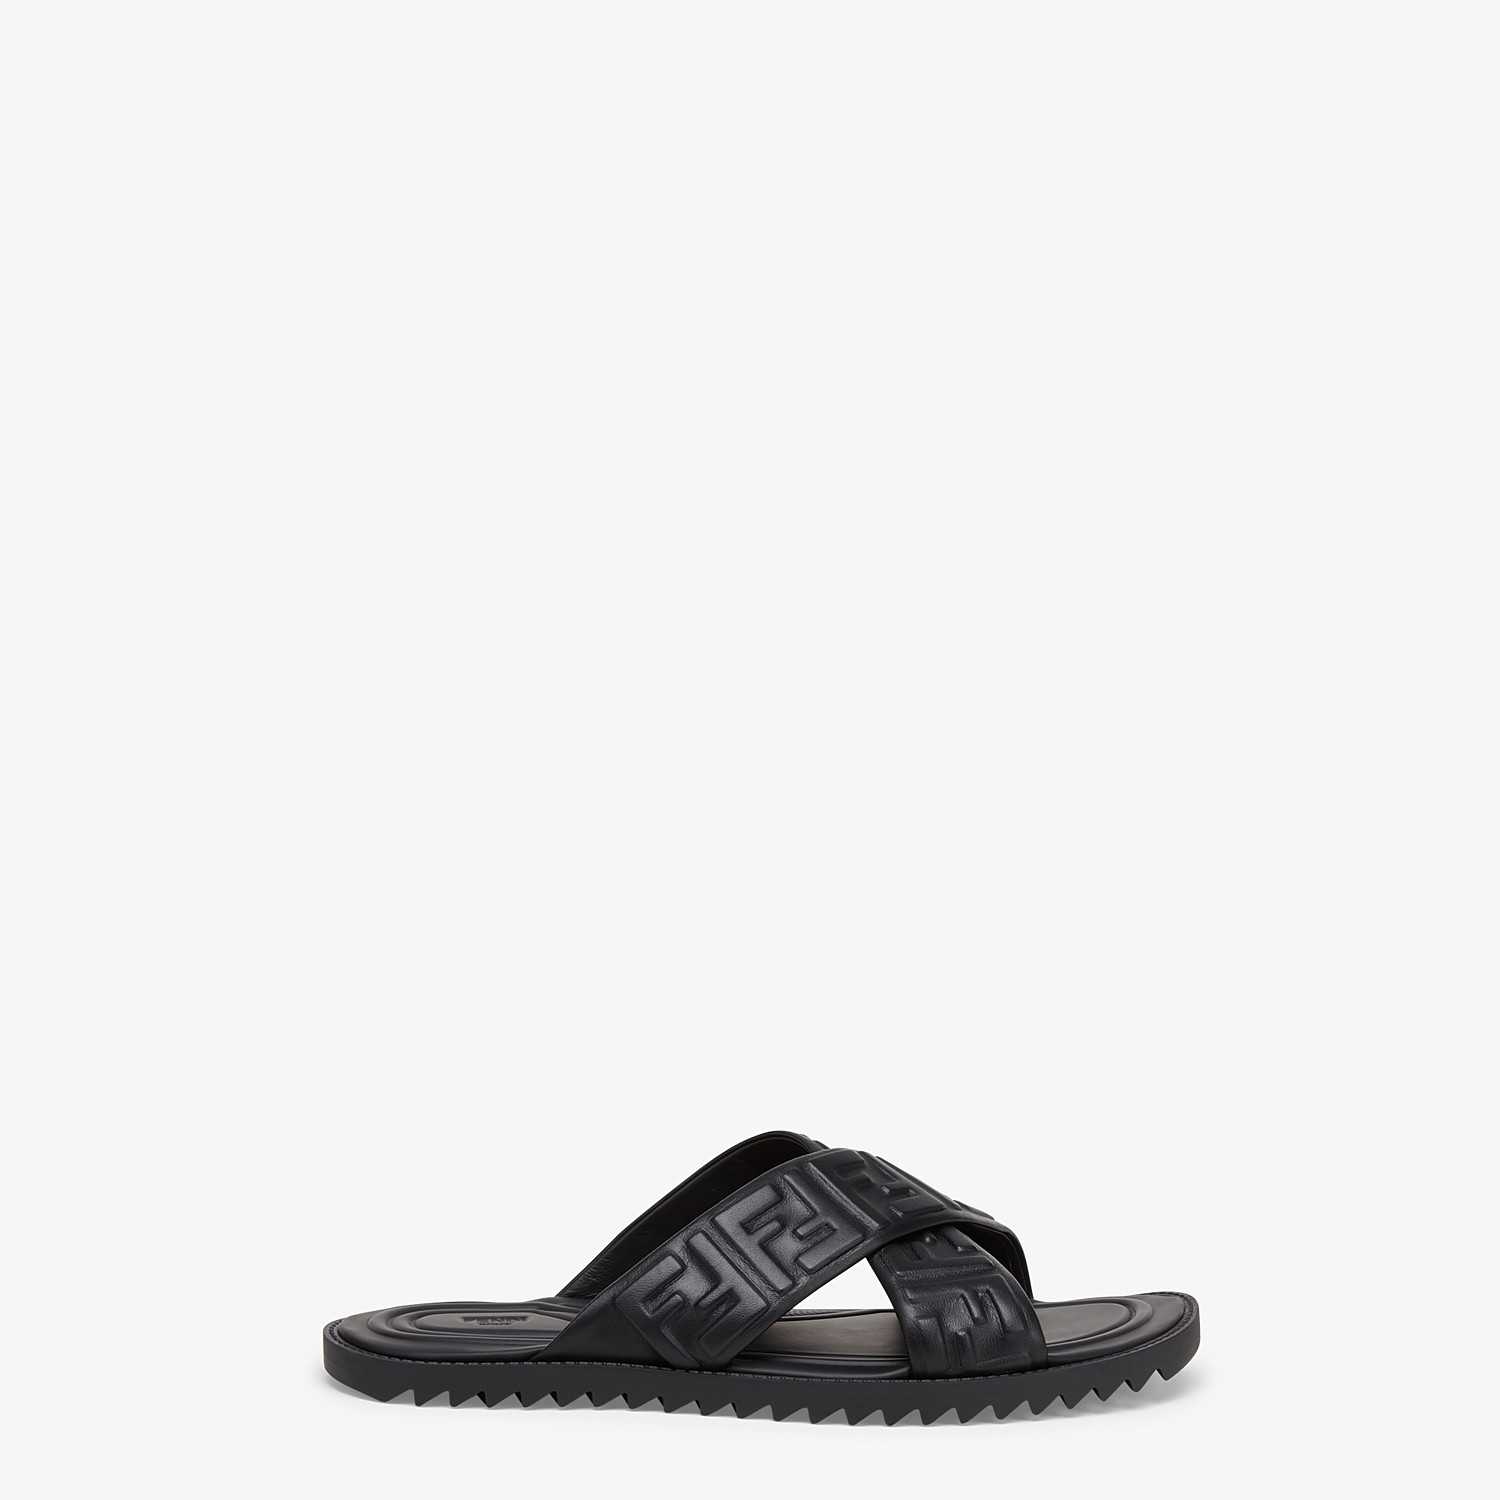 FENDI SANDALS - Black leather slides - view 1 detail